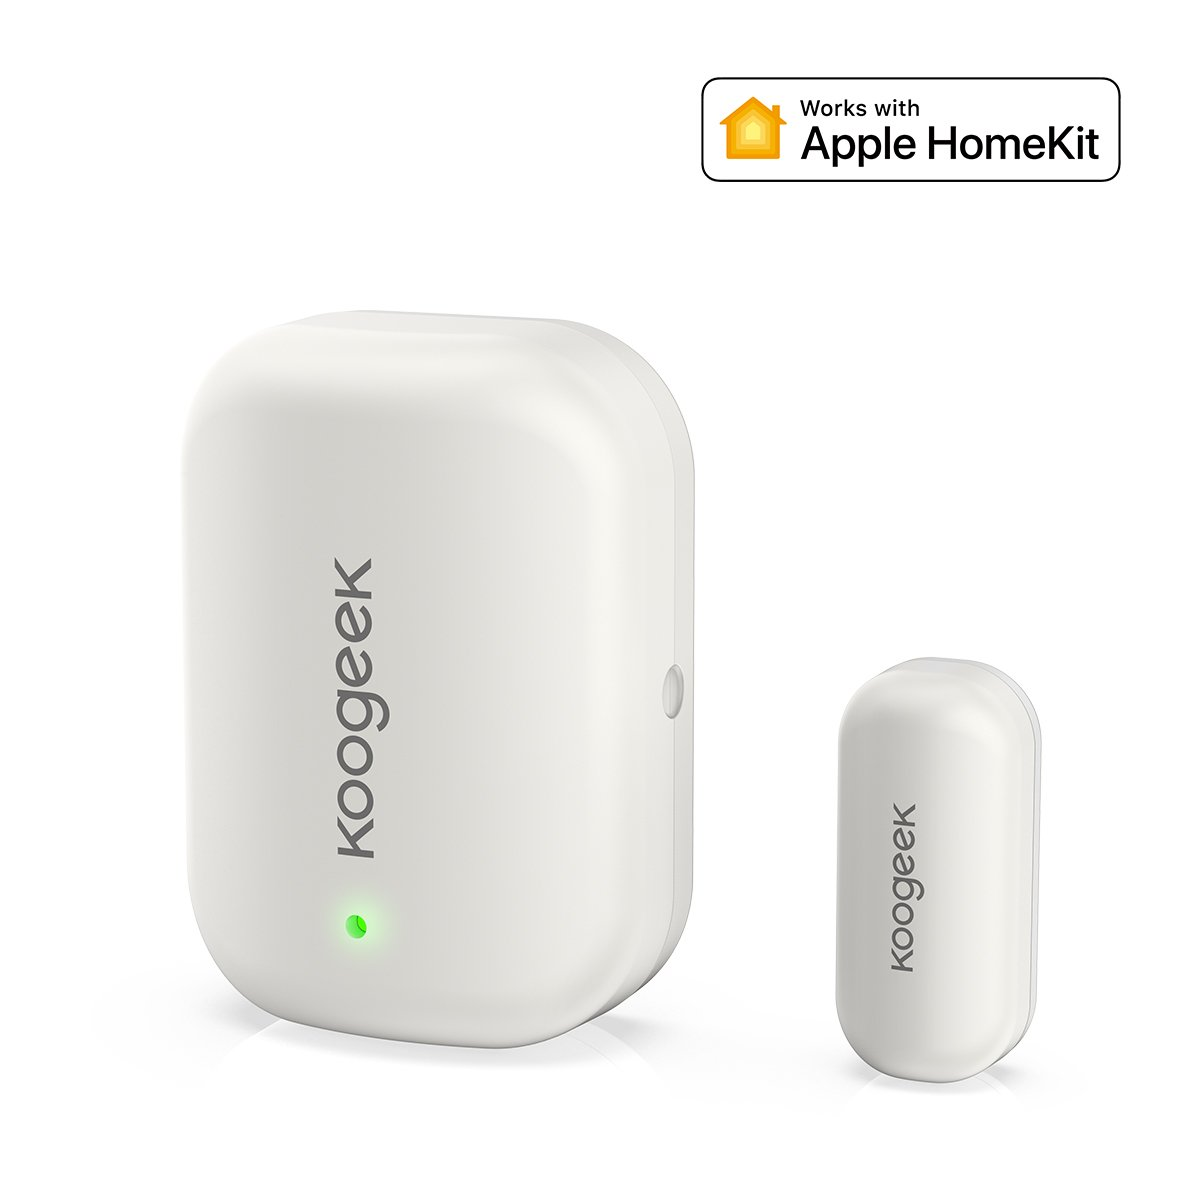 Koogeek Door Window Sensor Work with Apple HomeKit No Hub Required Replaceable Battery Automatic Trigger Remote for Doors Windows Cabinets and More